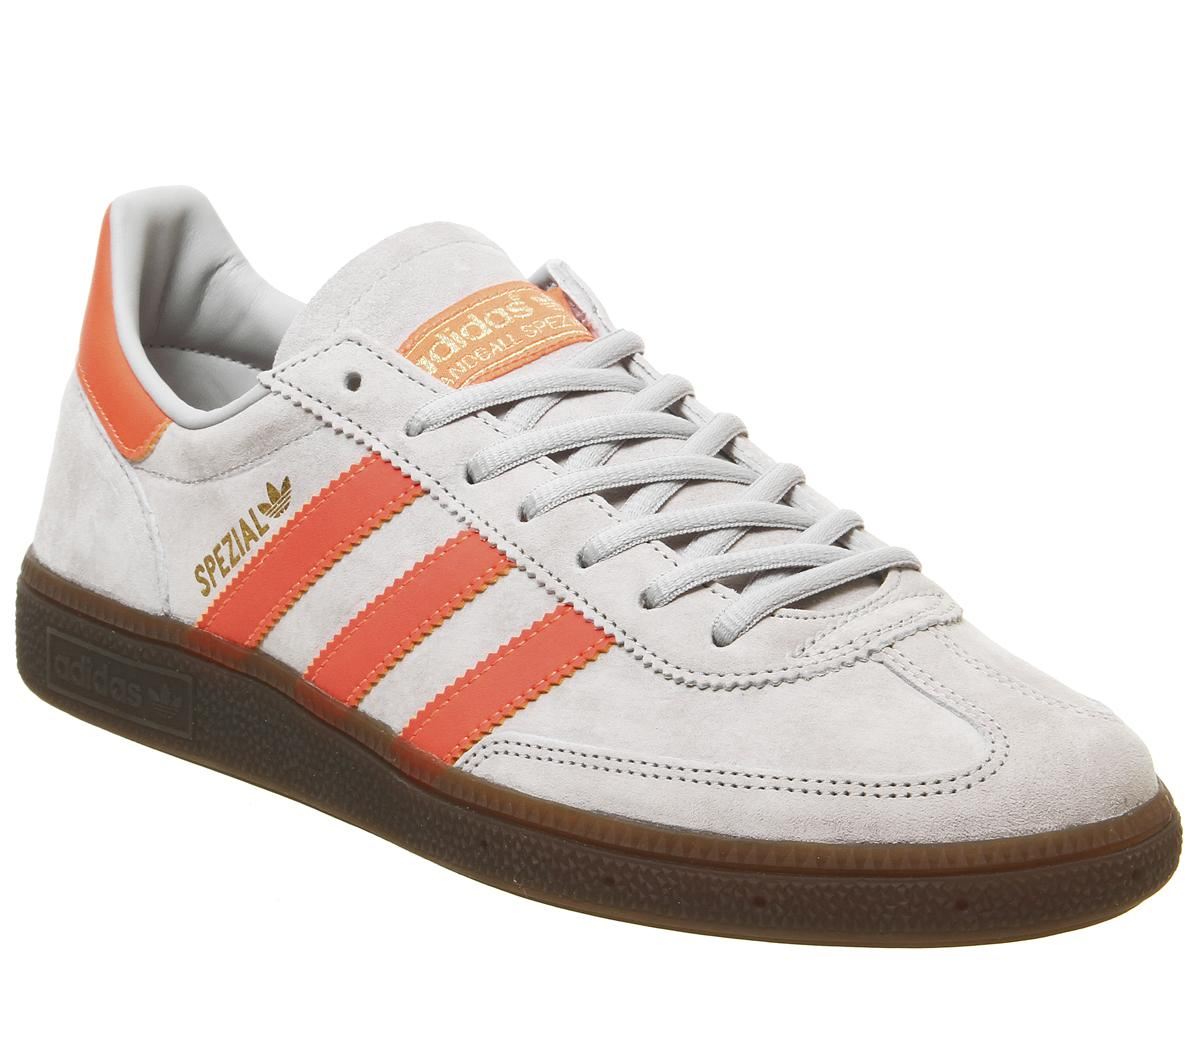 meditación río bufanda  adidas handball spezial grey and orange online -